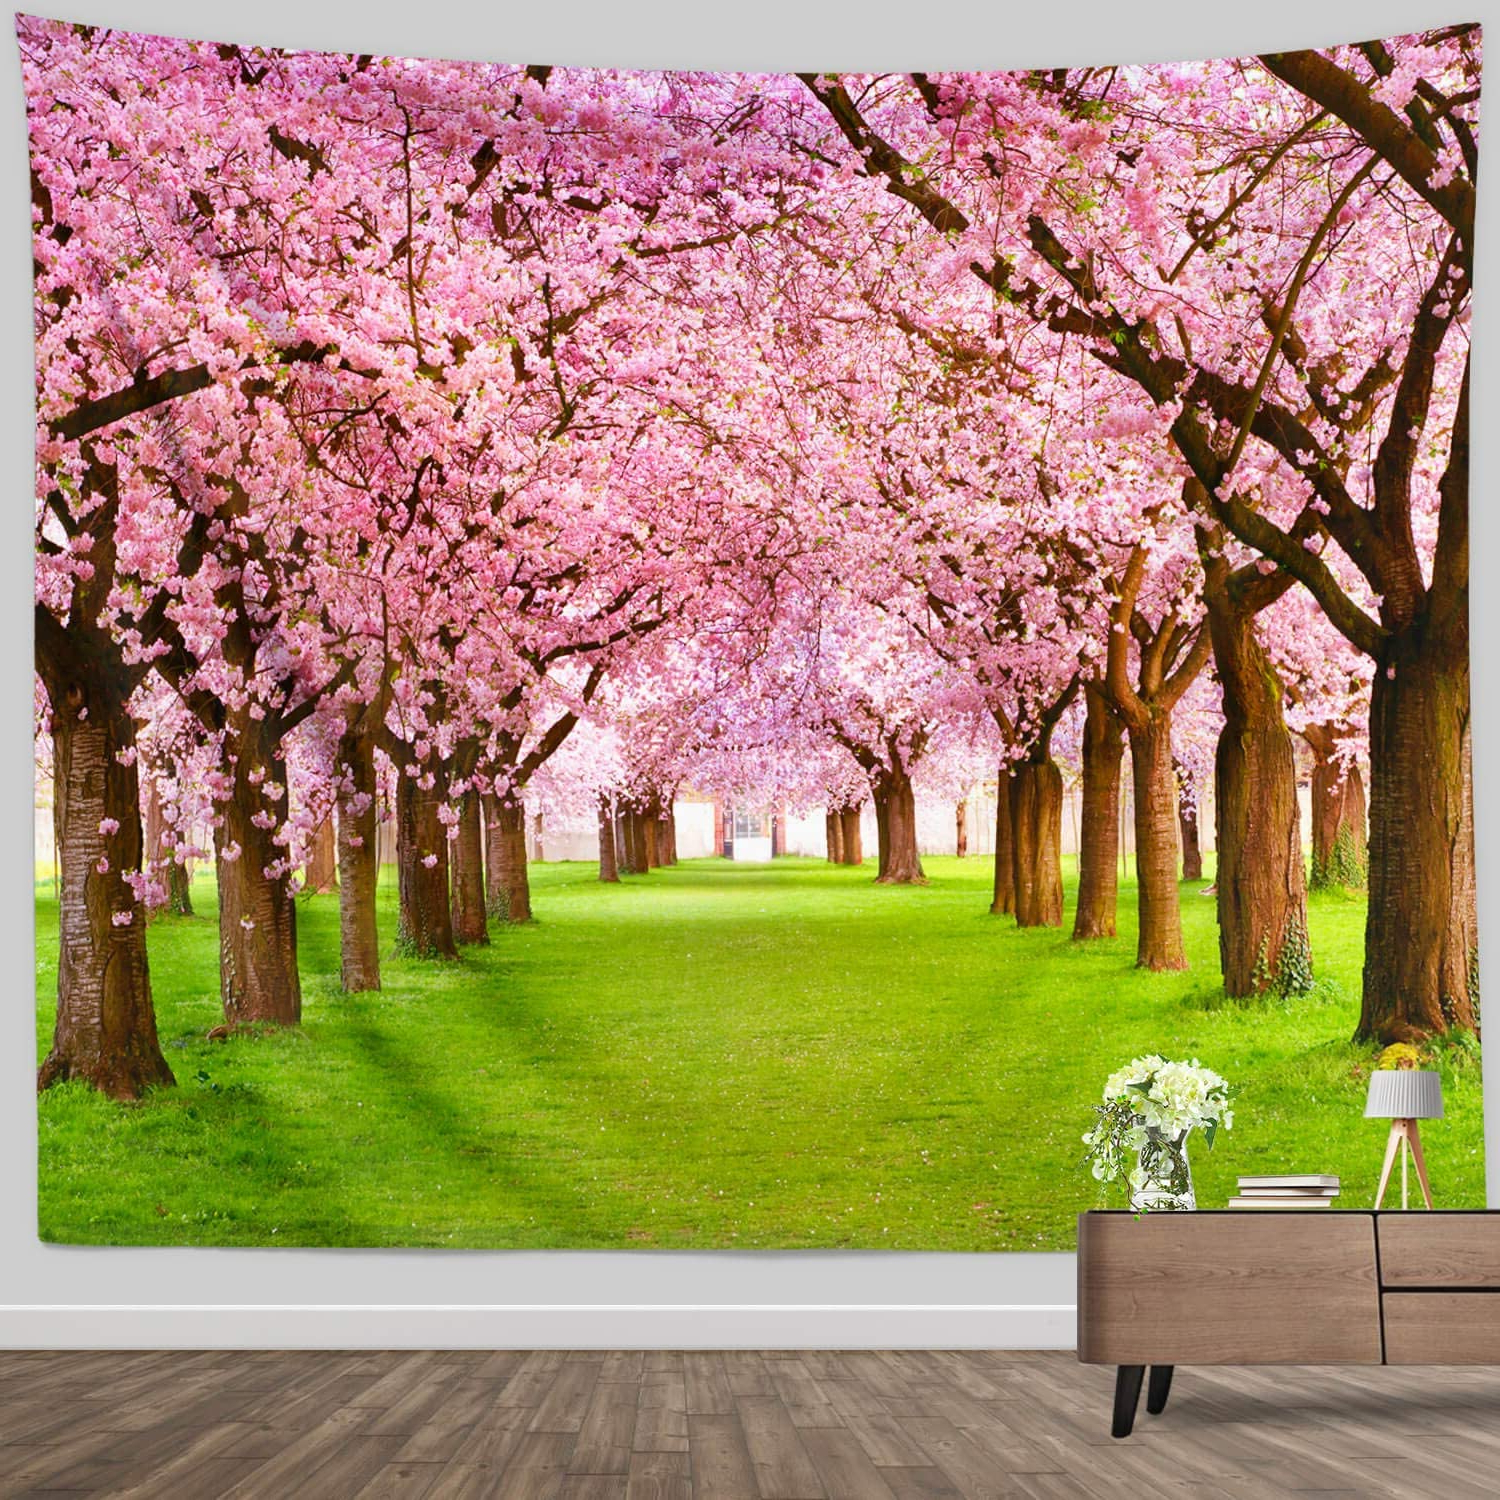 Blended Fabric Spring Blossom Tapestries Pertaining To Well Liked Flower Tree Decor Tapestry For Bedroom, Spring Asian Cherry Blossom Nature Scene Wall Tapestry Garden Landscape Wall Hanging For Bedroom Living Room (View 3 of 20)